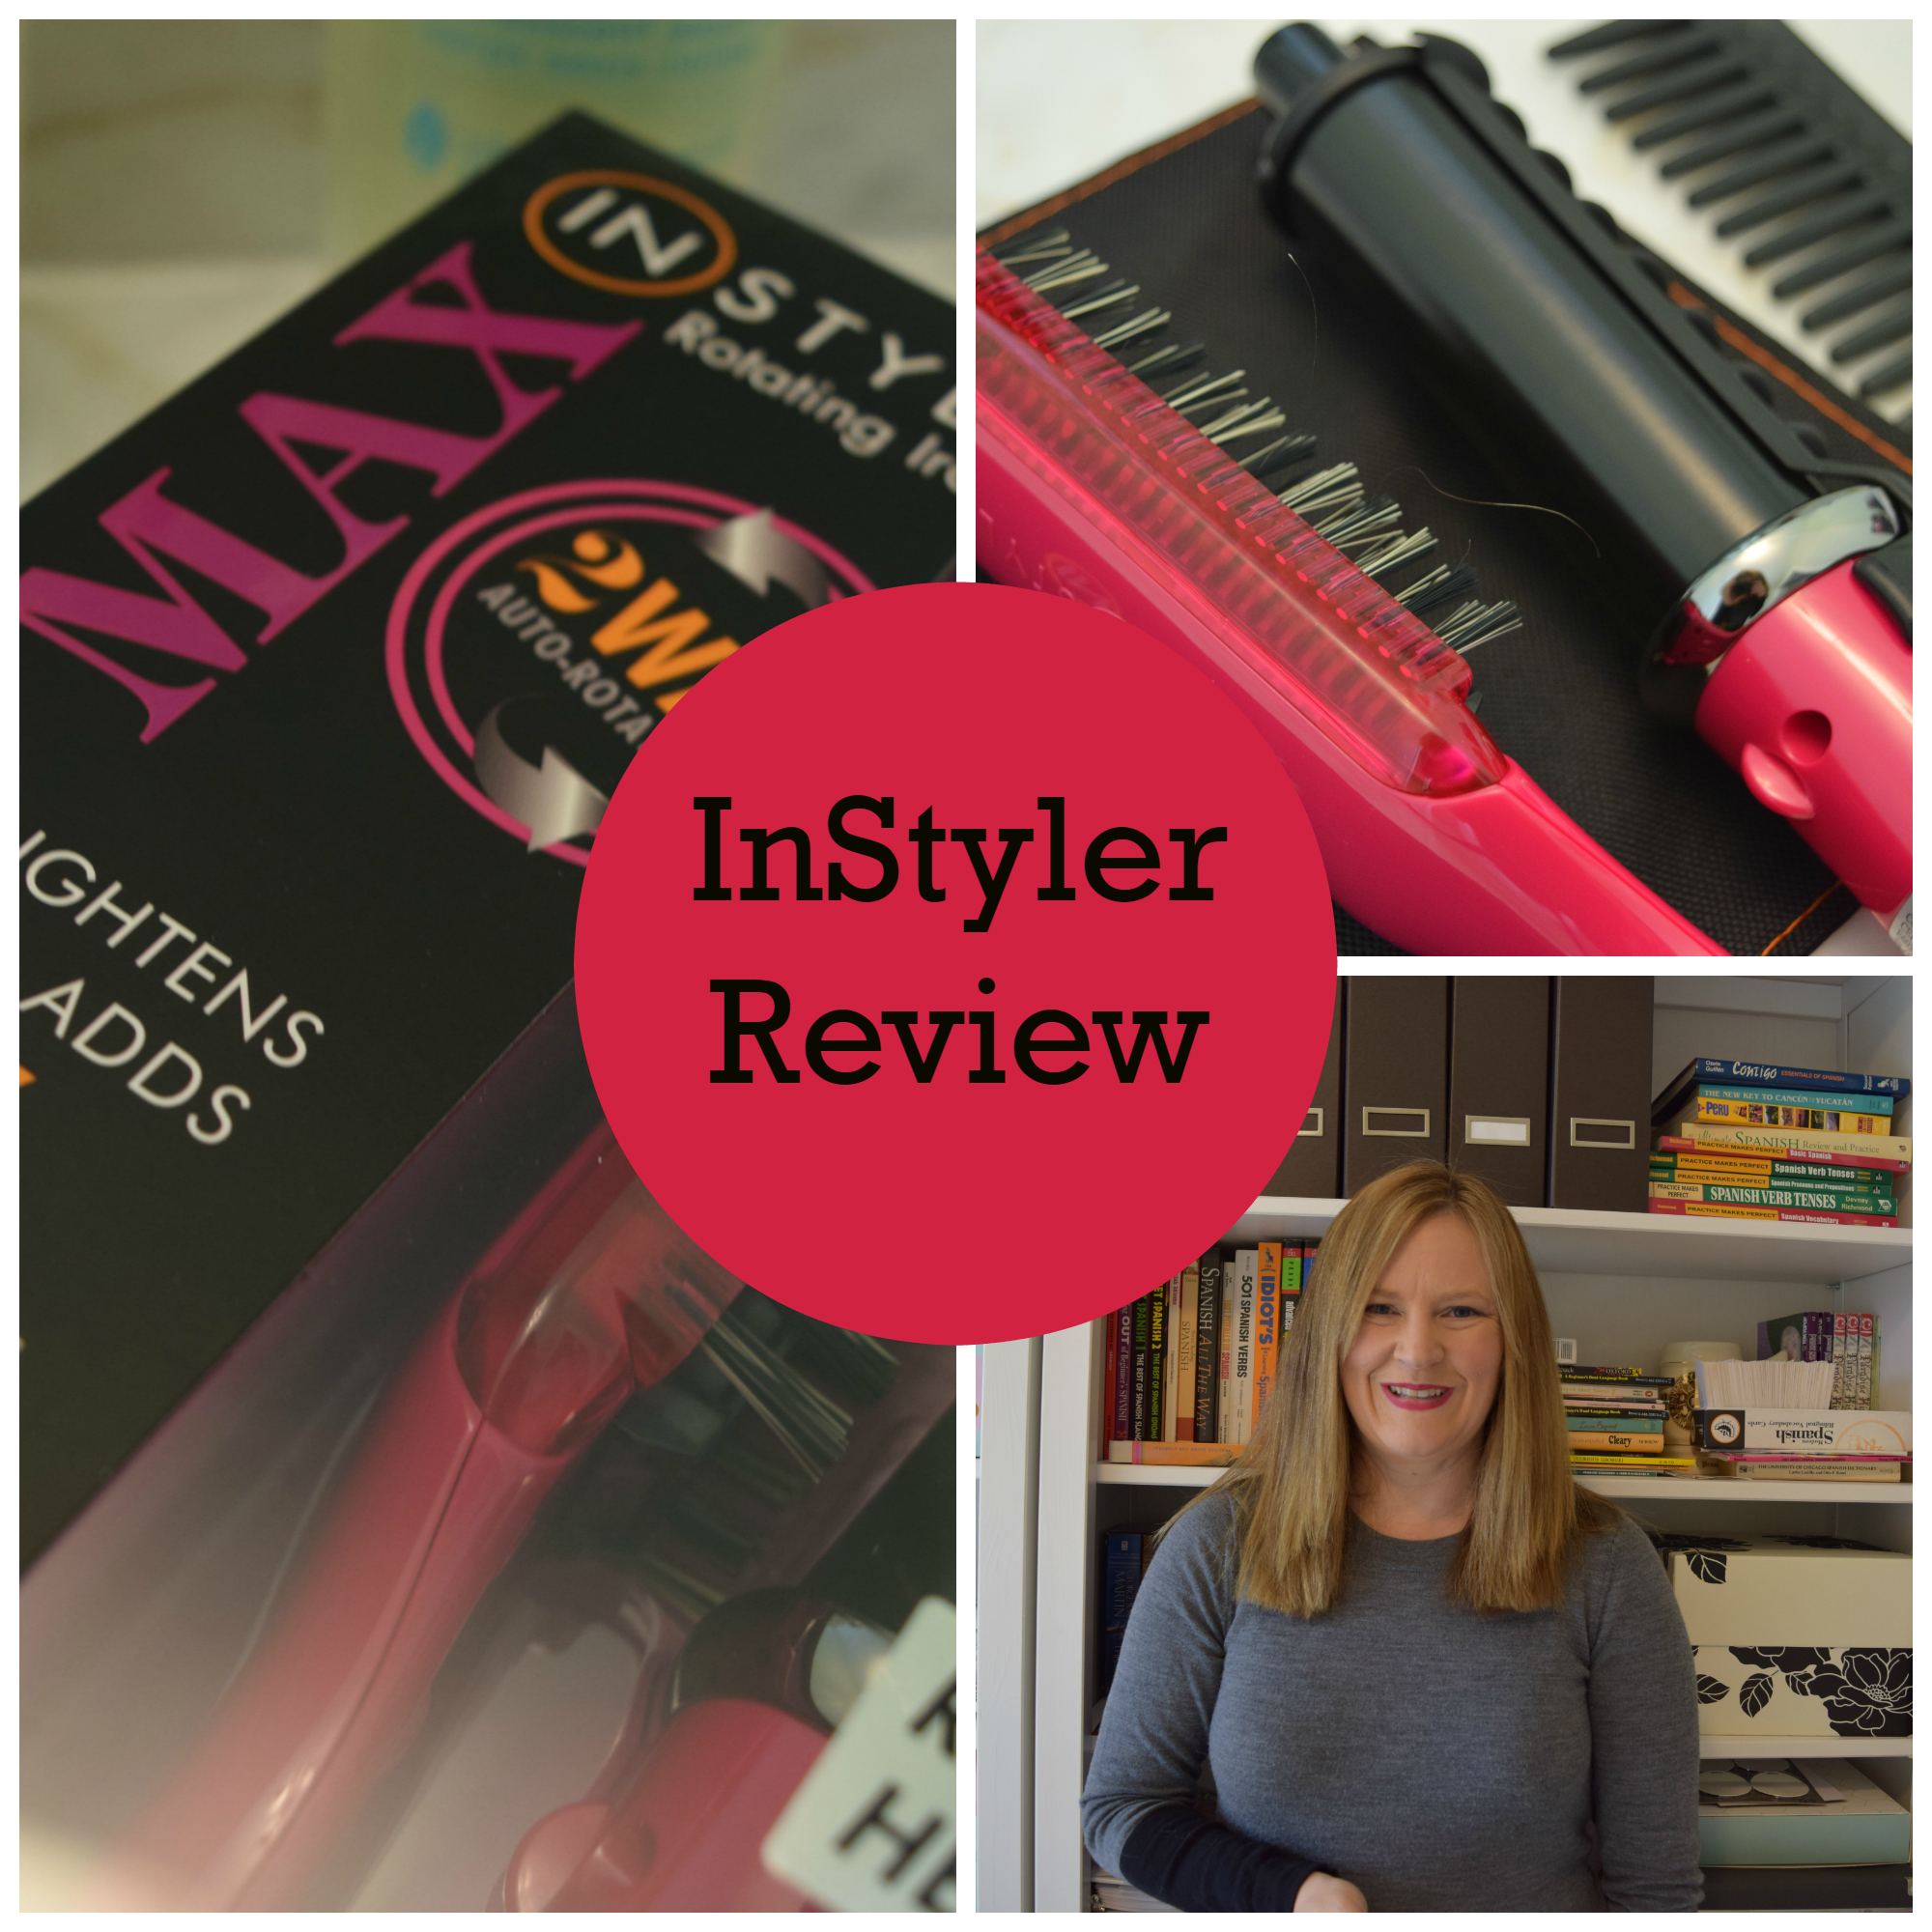 instyler reviews Read consumer reviews to see why people rate instyler rapid heat rotating curling and flat iron 30219 37 out of 5 also see scores for competitive products.